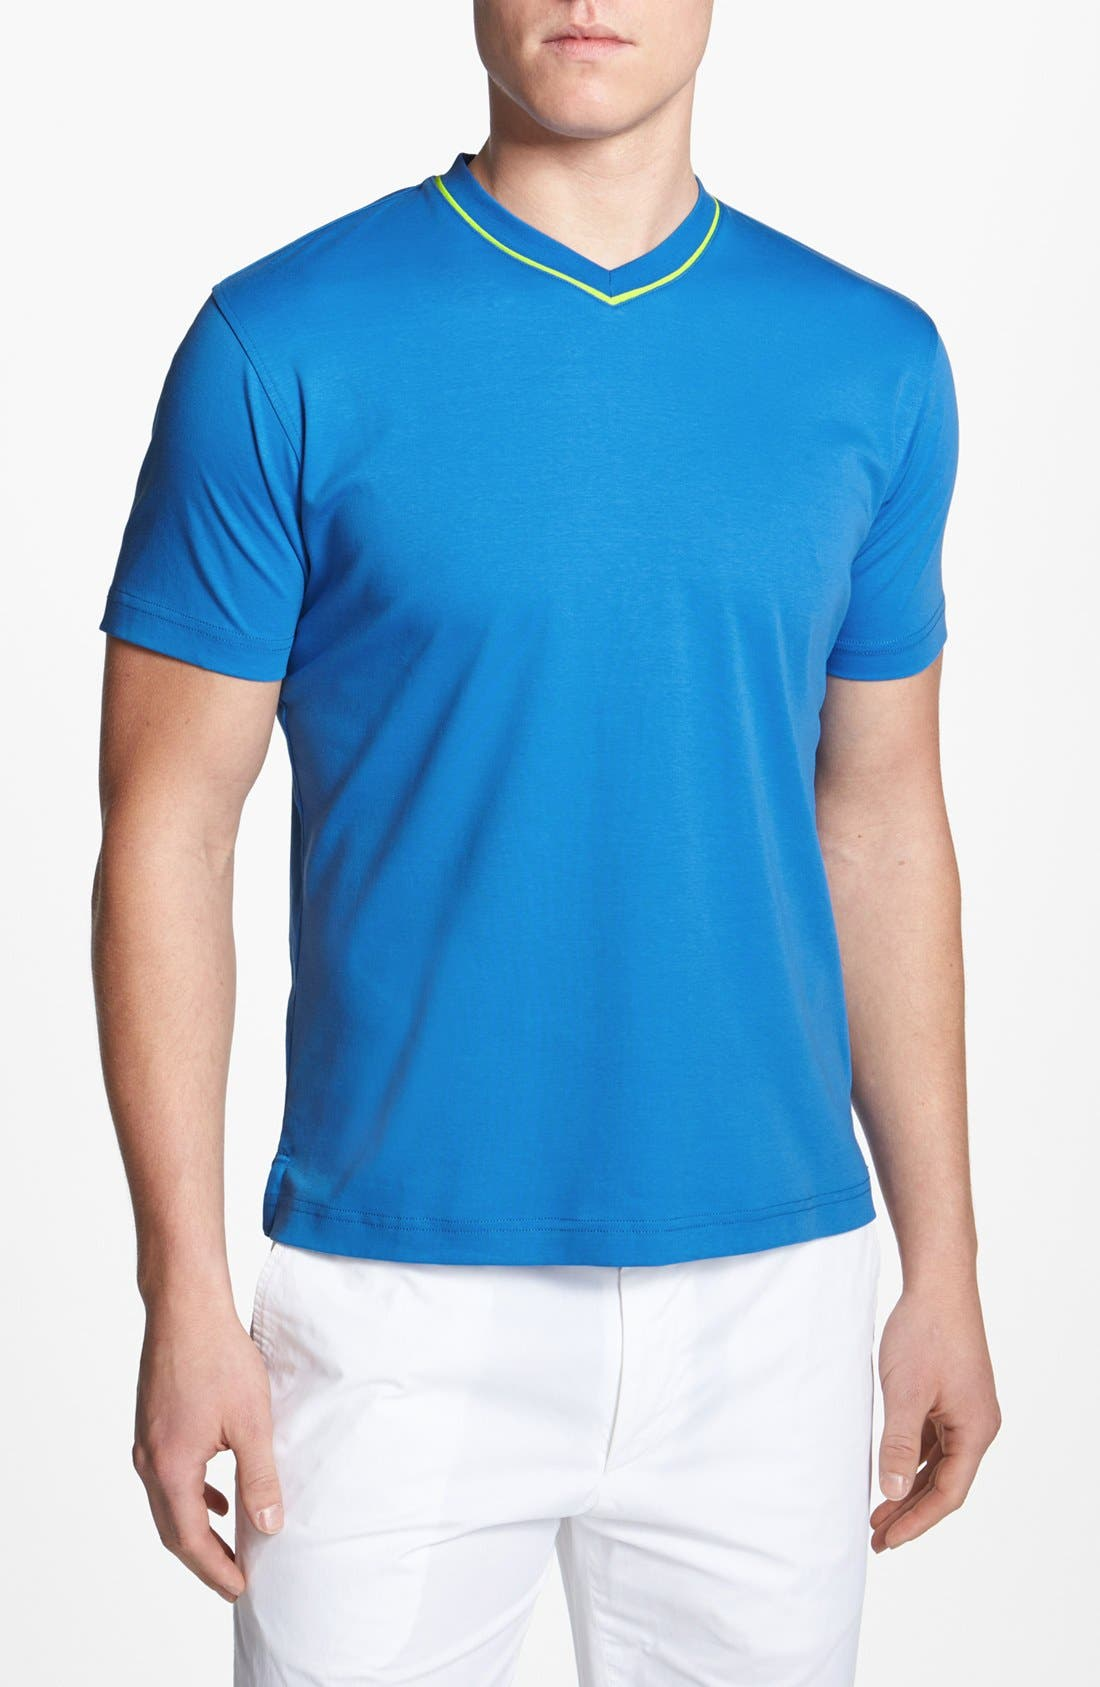 Alternate Image 1 Selected - Robert Graham 'Nevis' V-Neck T-Shirt